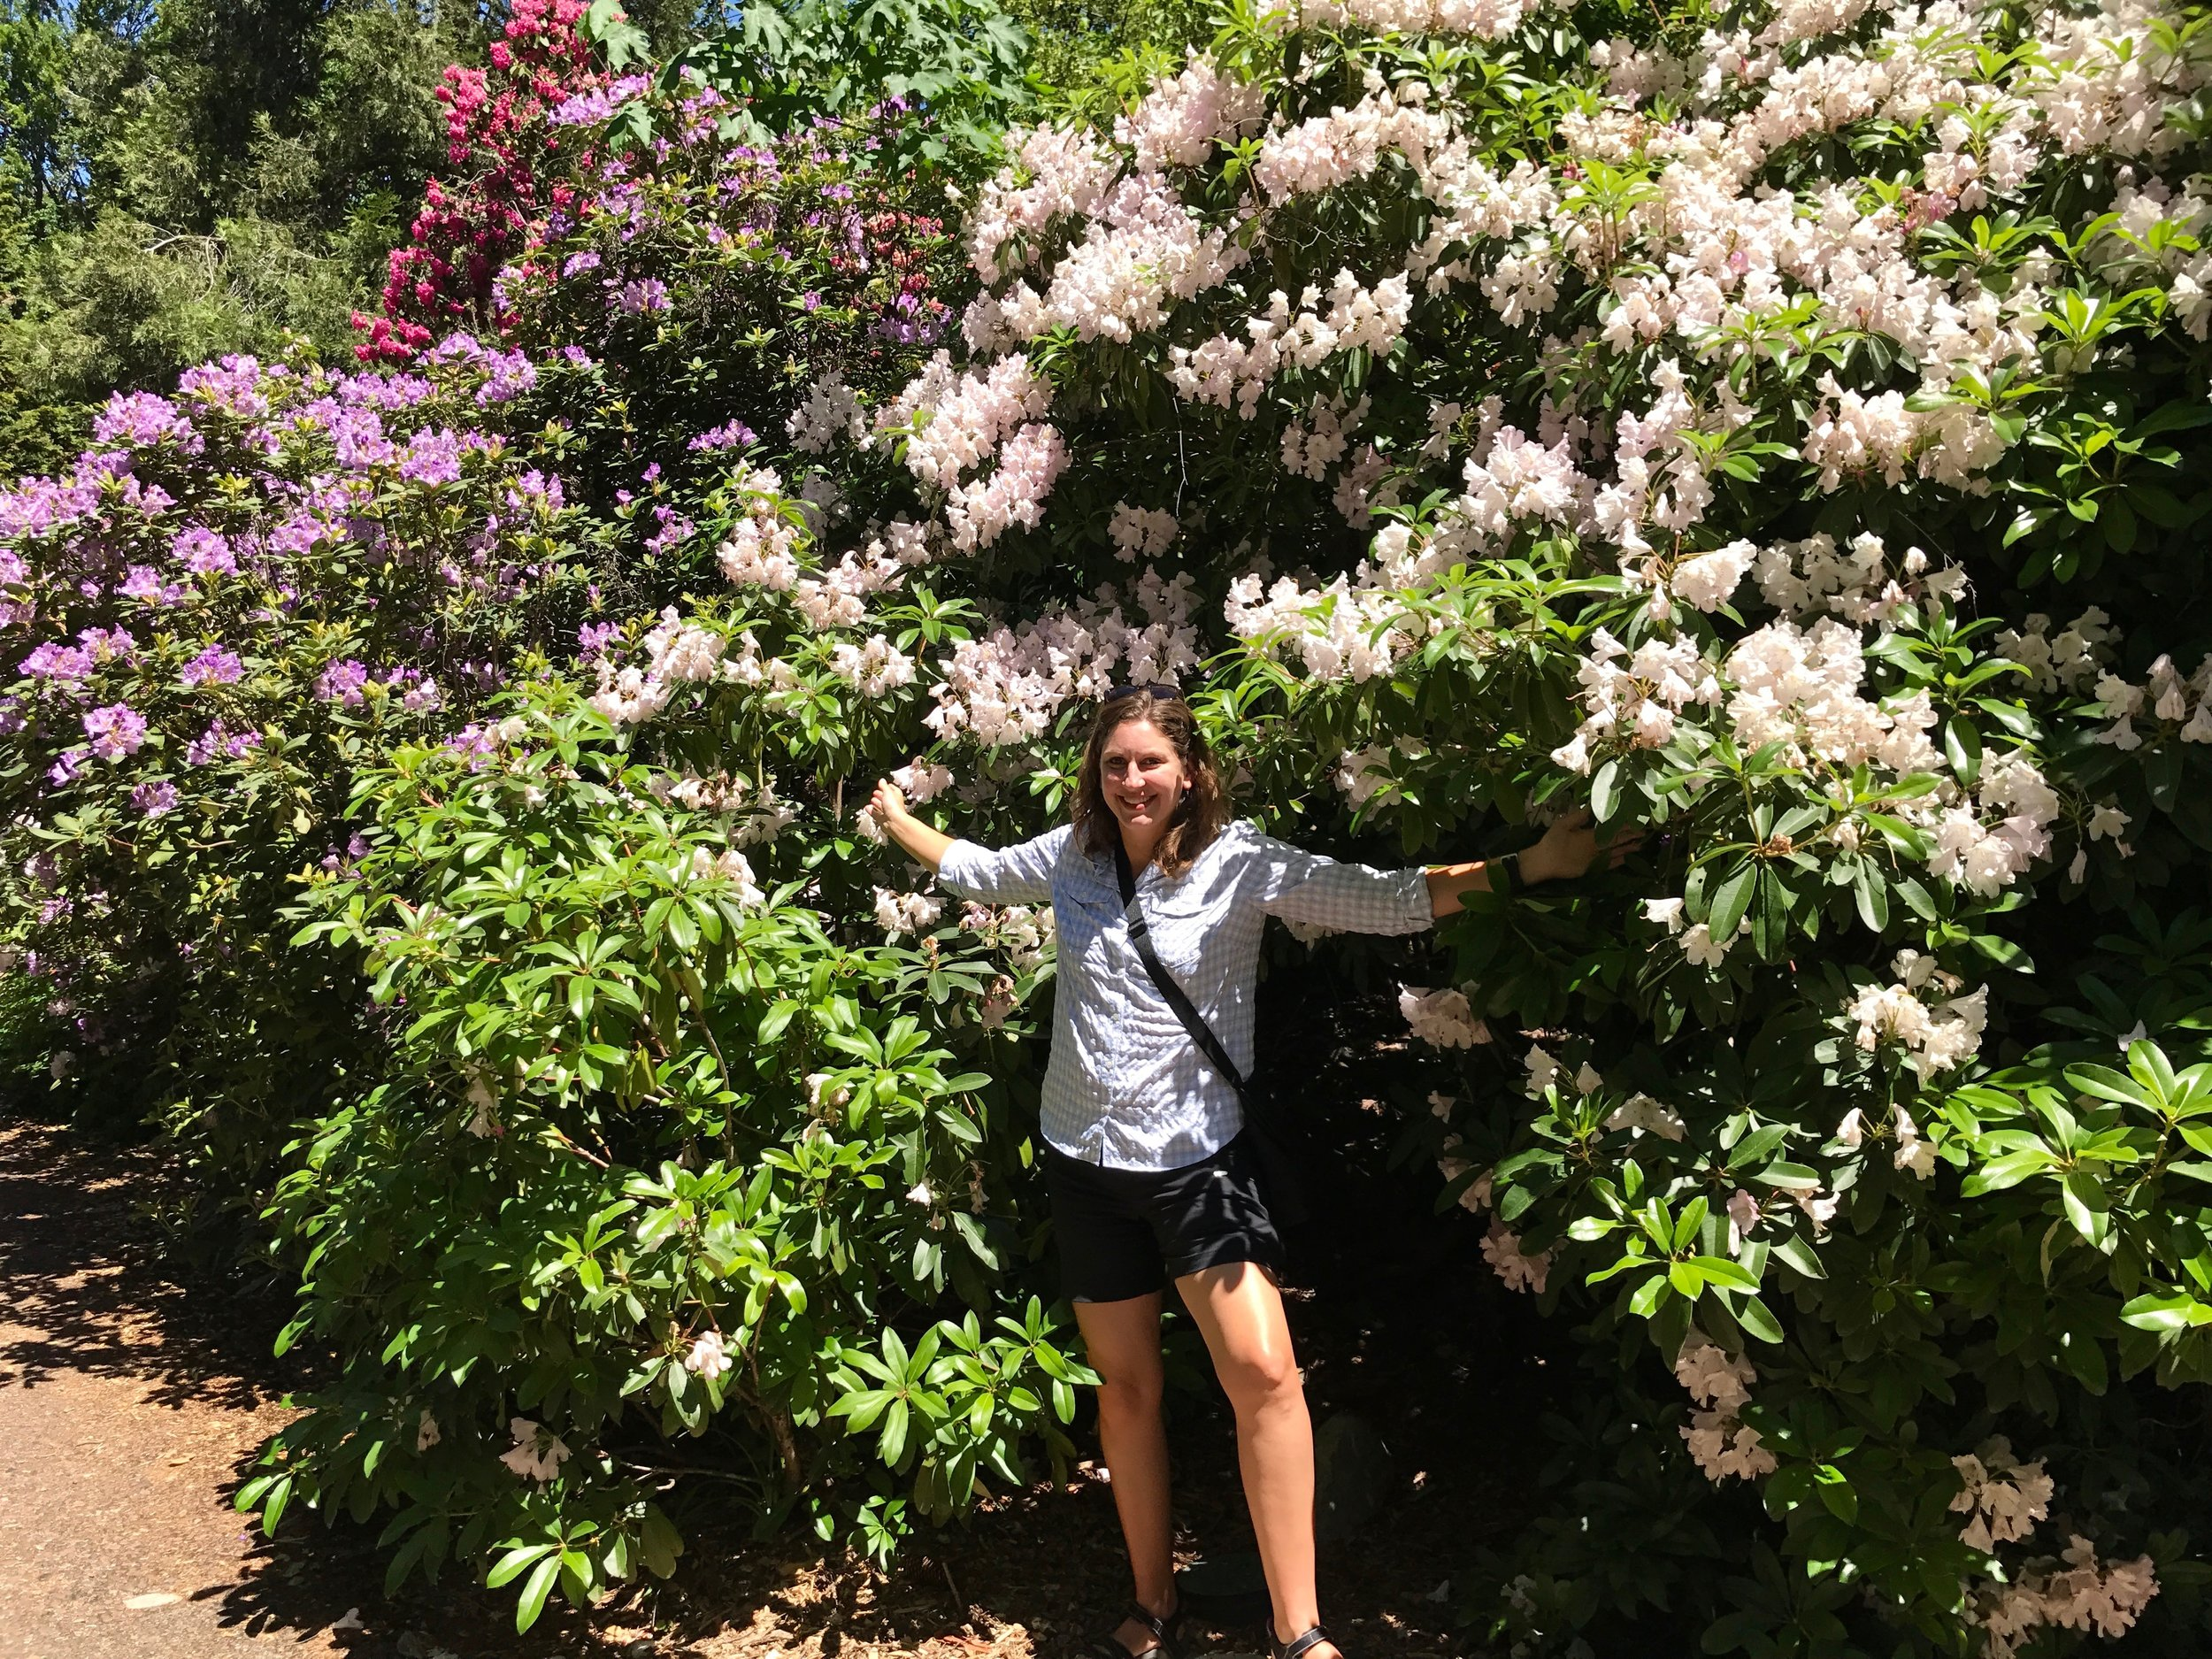 Teressa in Lithia Park's giant rhododendrons